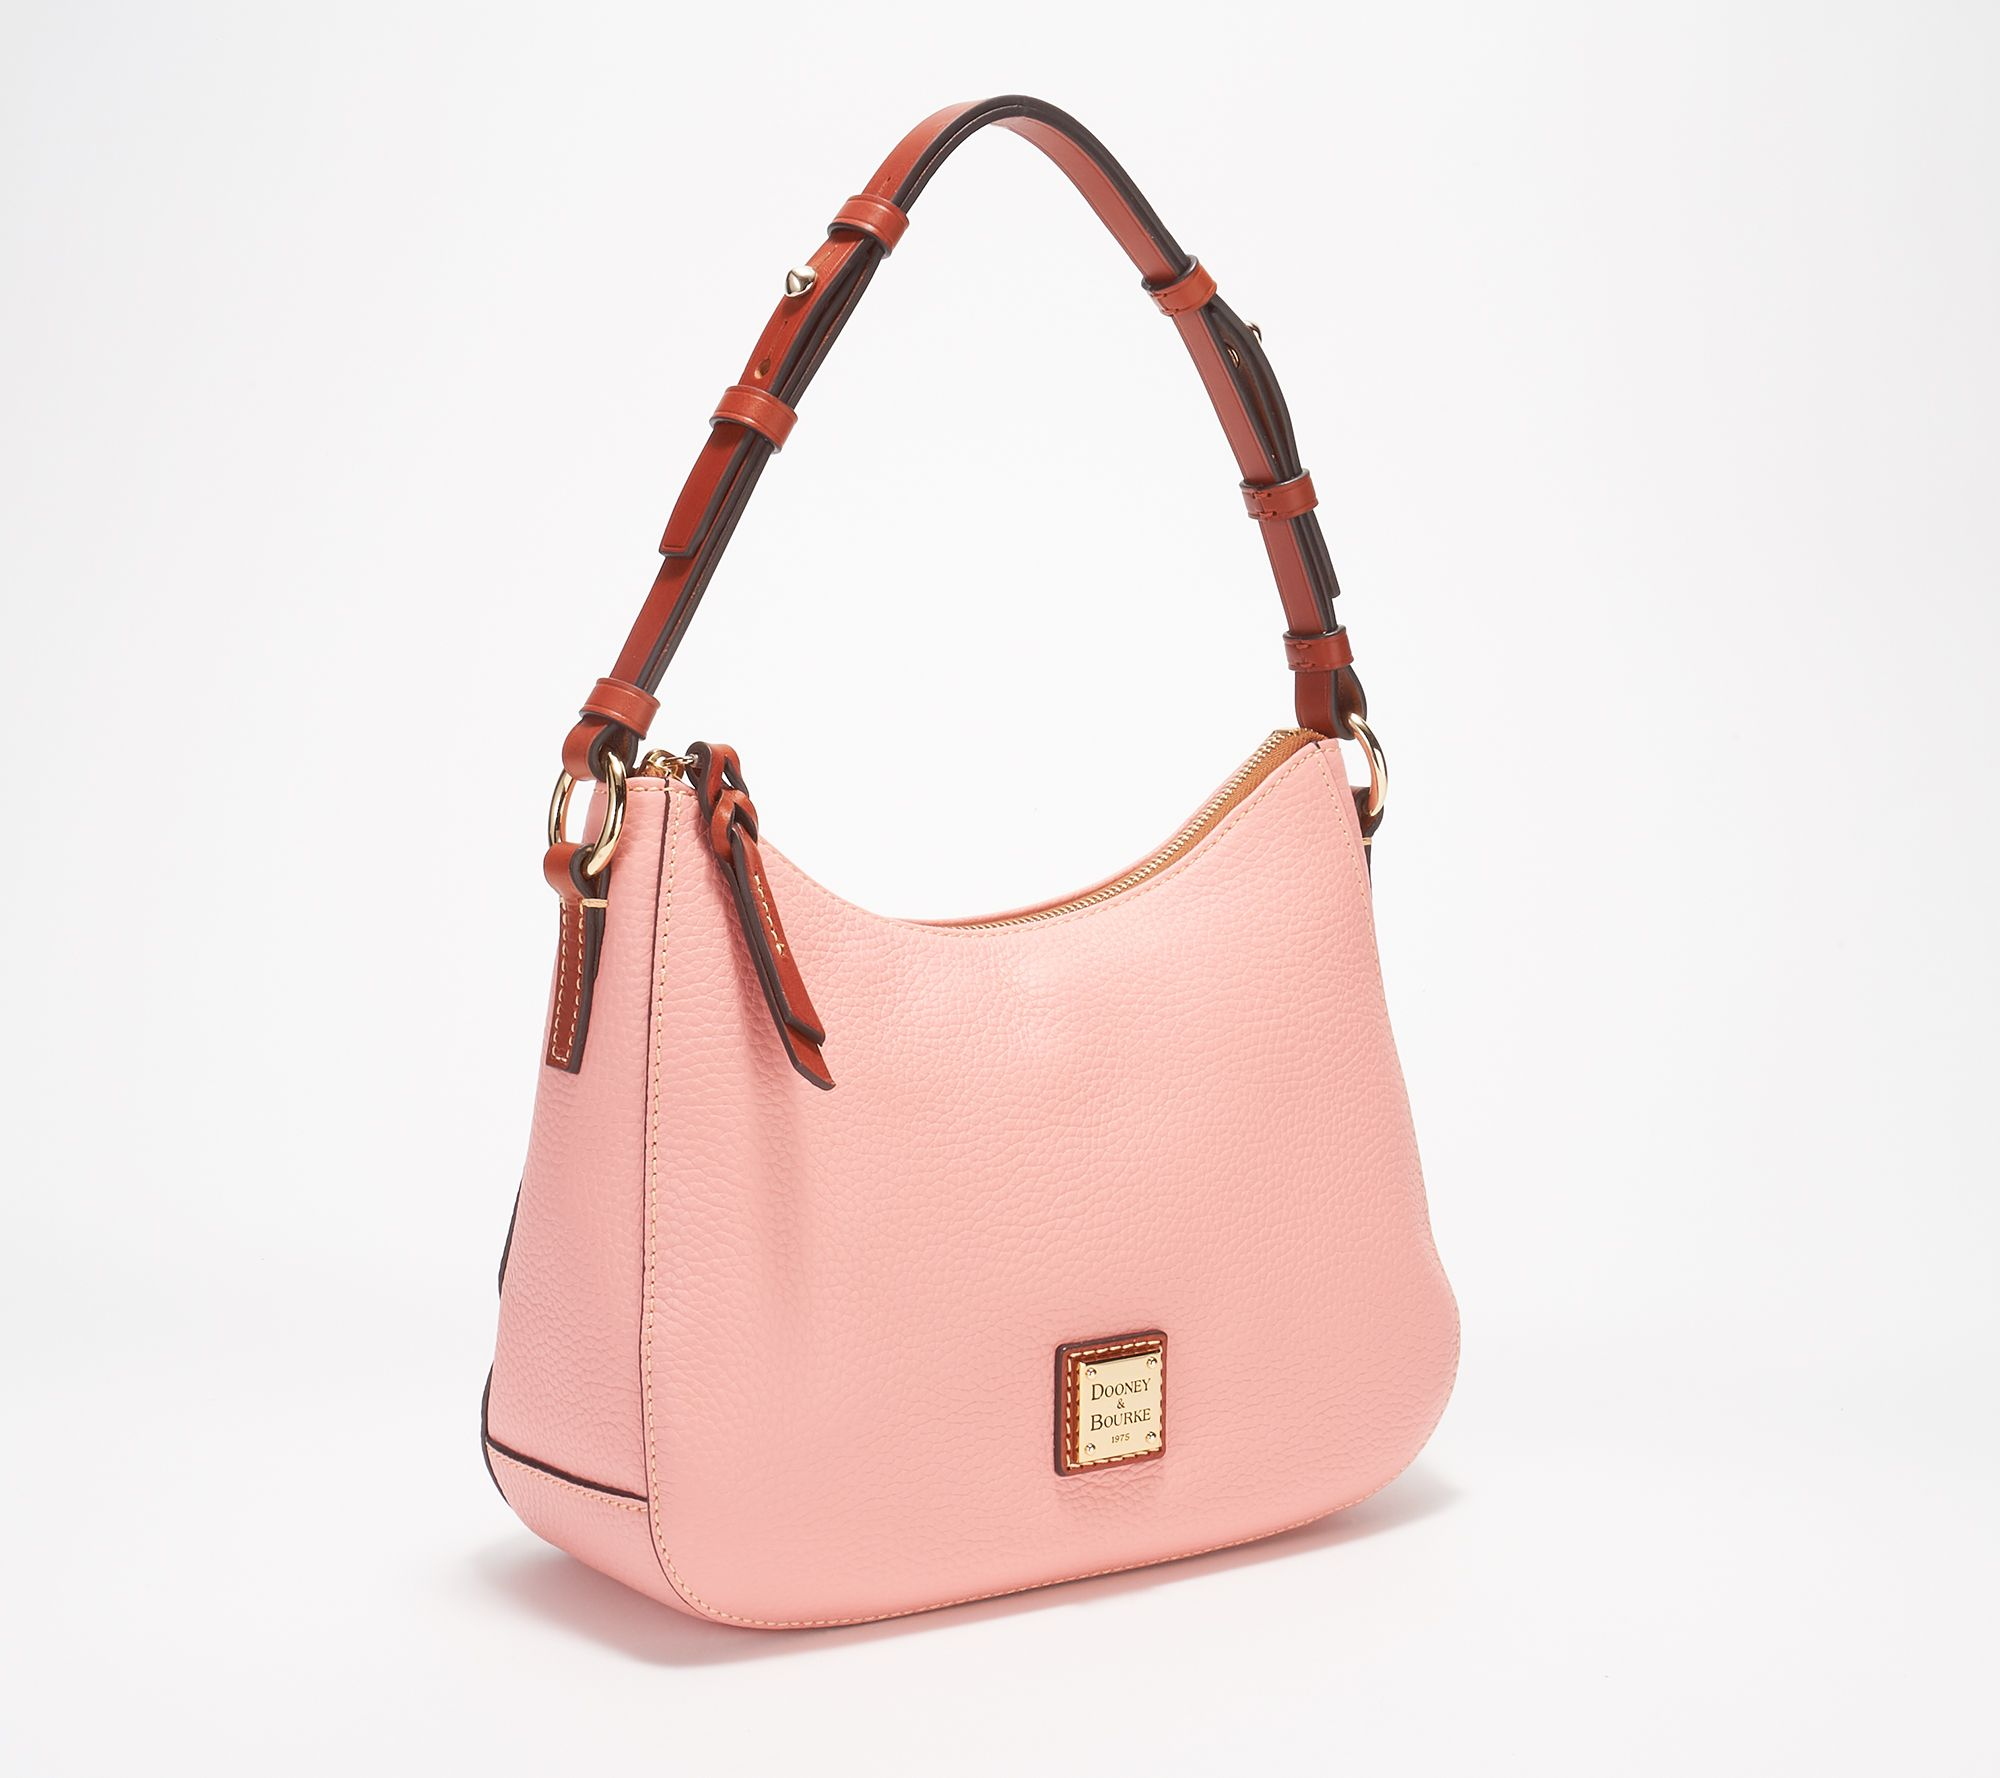 809bf5a706 Dooney   Bourke Pebble Leather Small Kiley Hobo - Page 1 — QVC.com